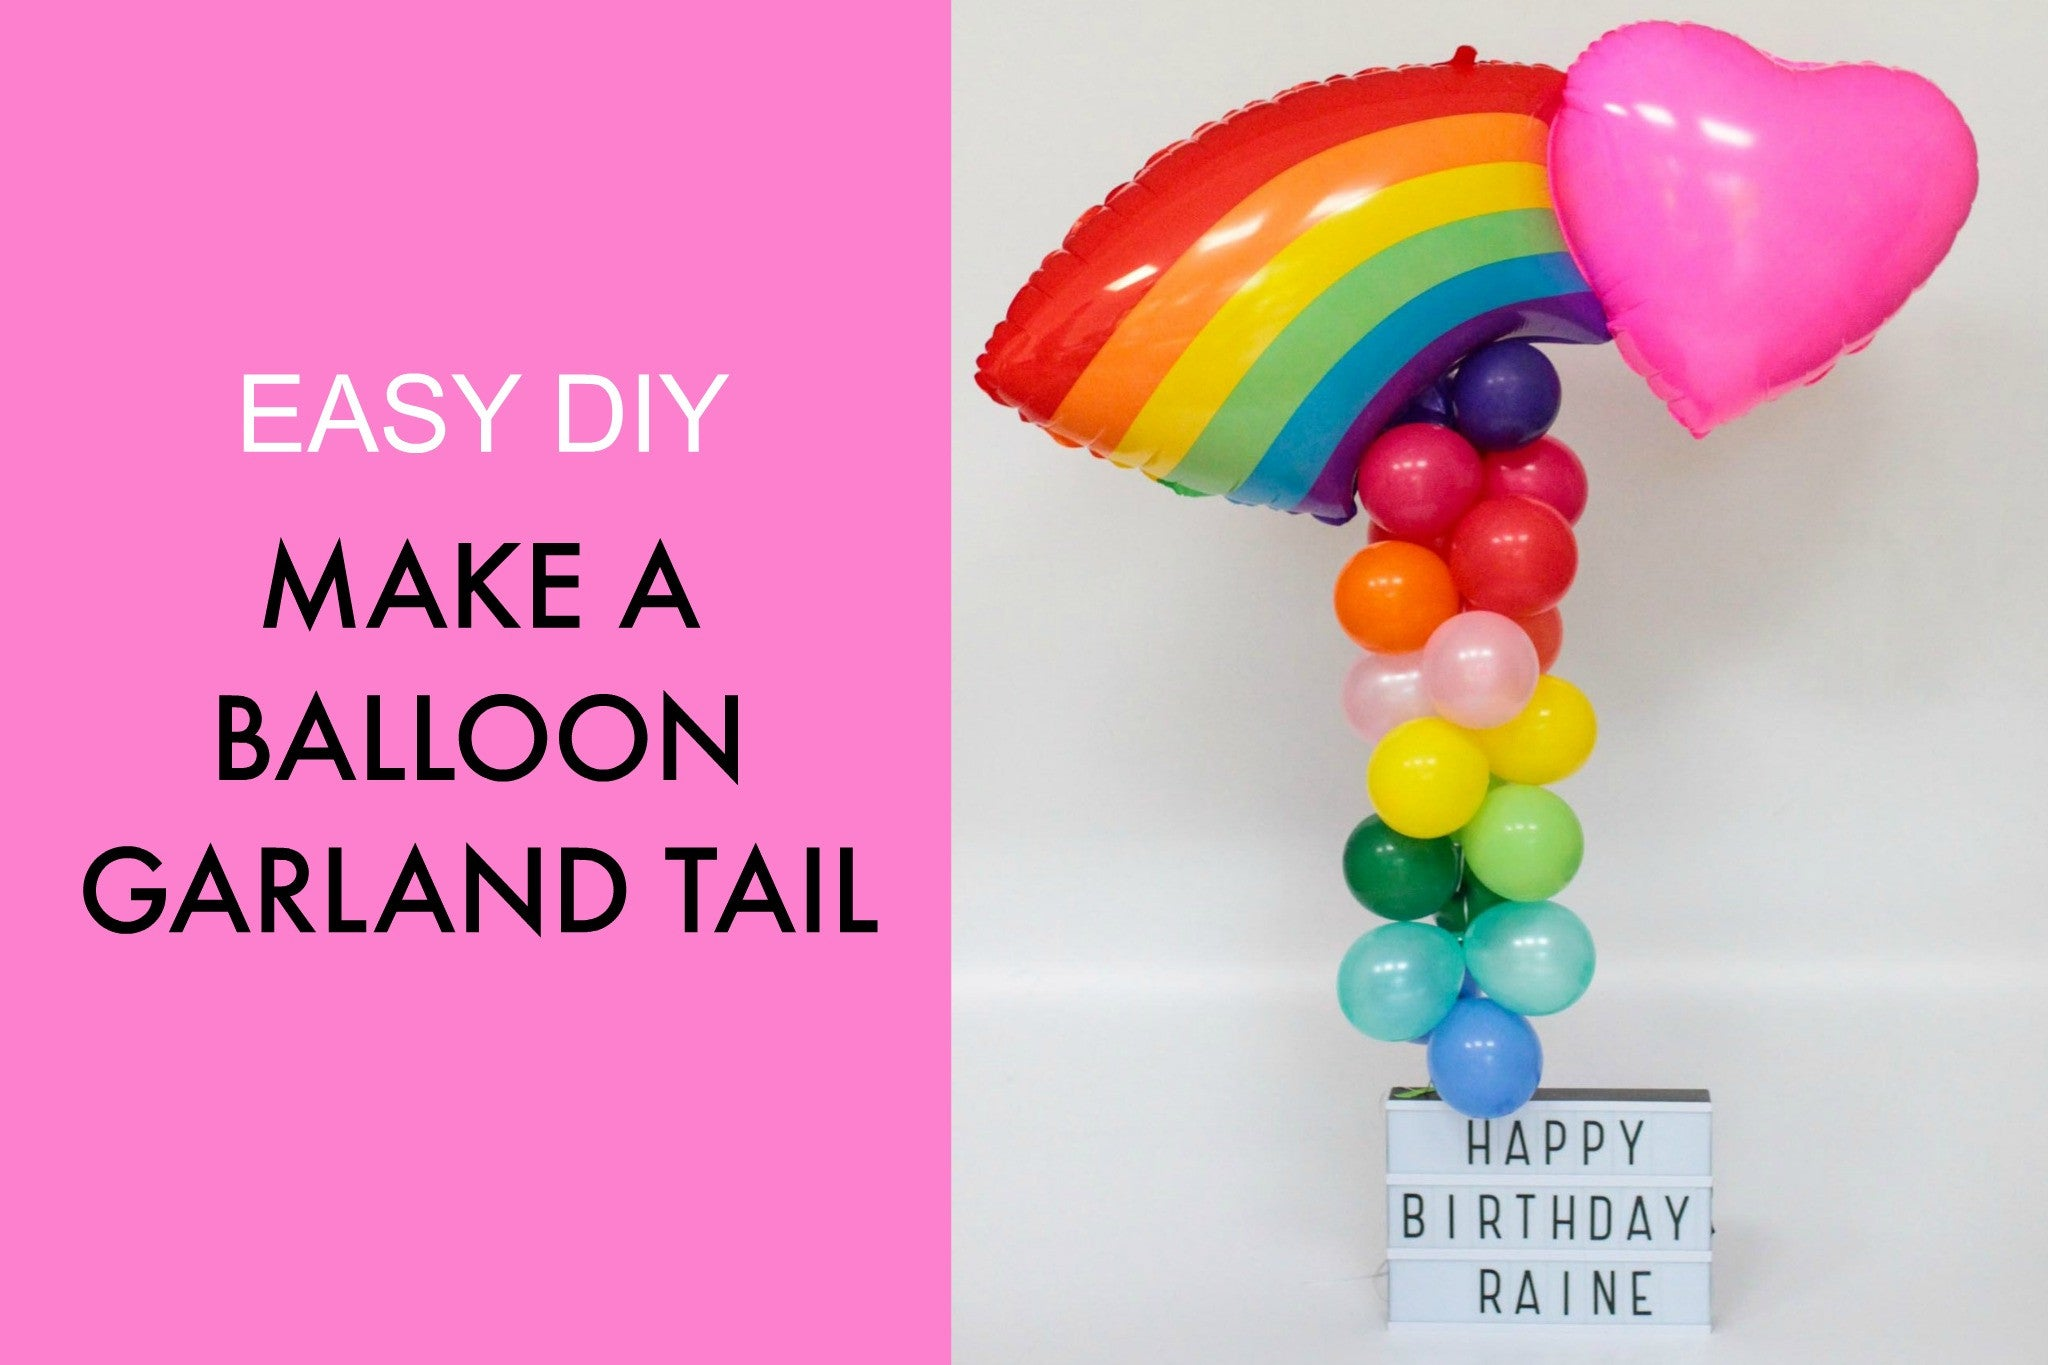 Balloon garland Tail Tutorial